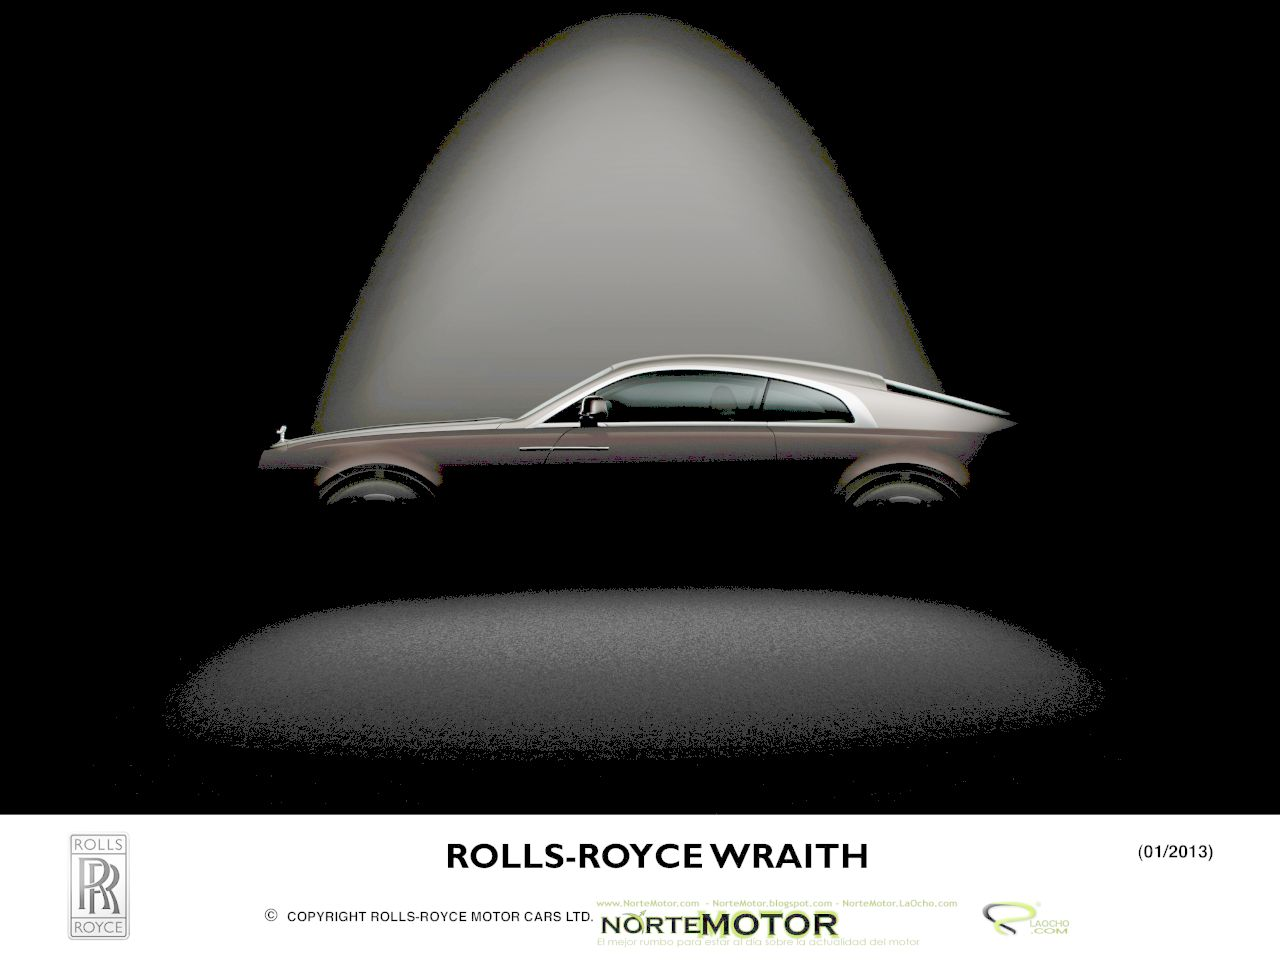 rolls royce wraith evokes the pioneering spirit and lust for adventure